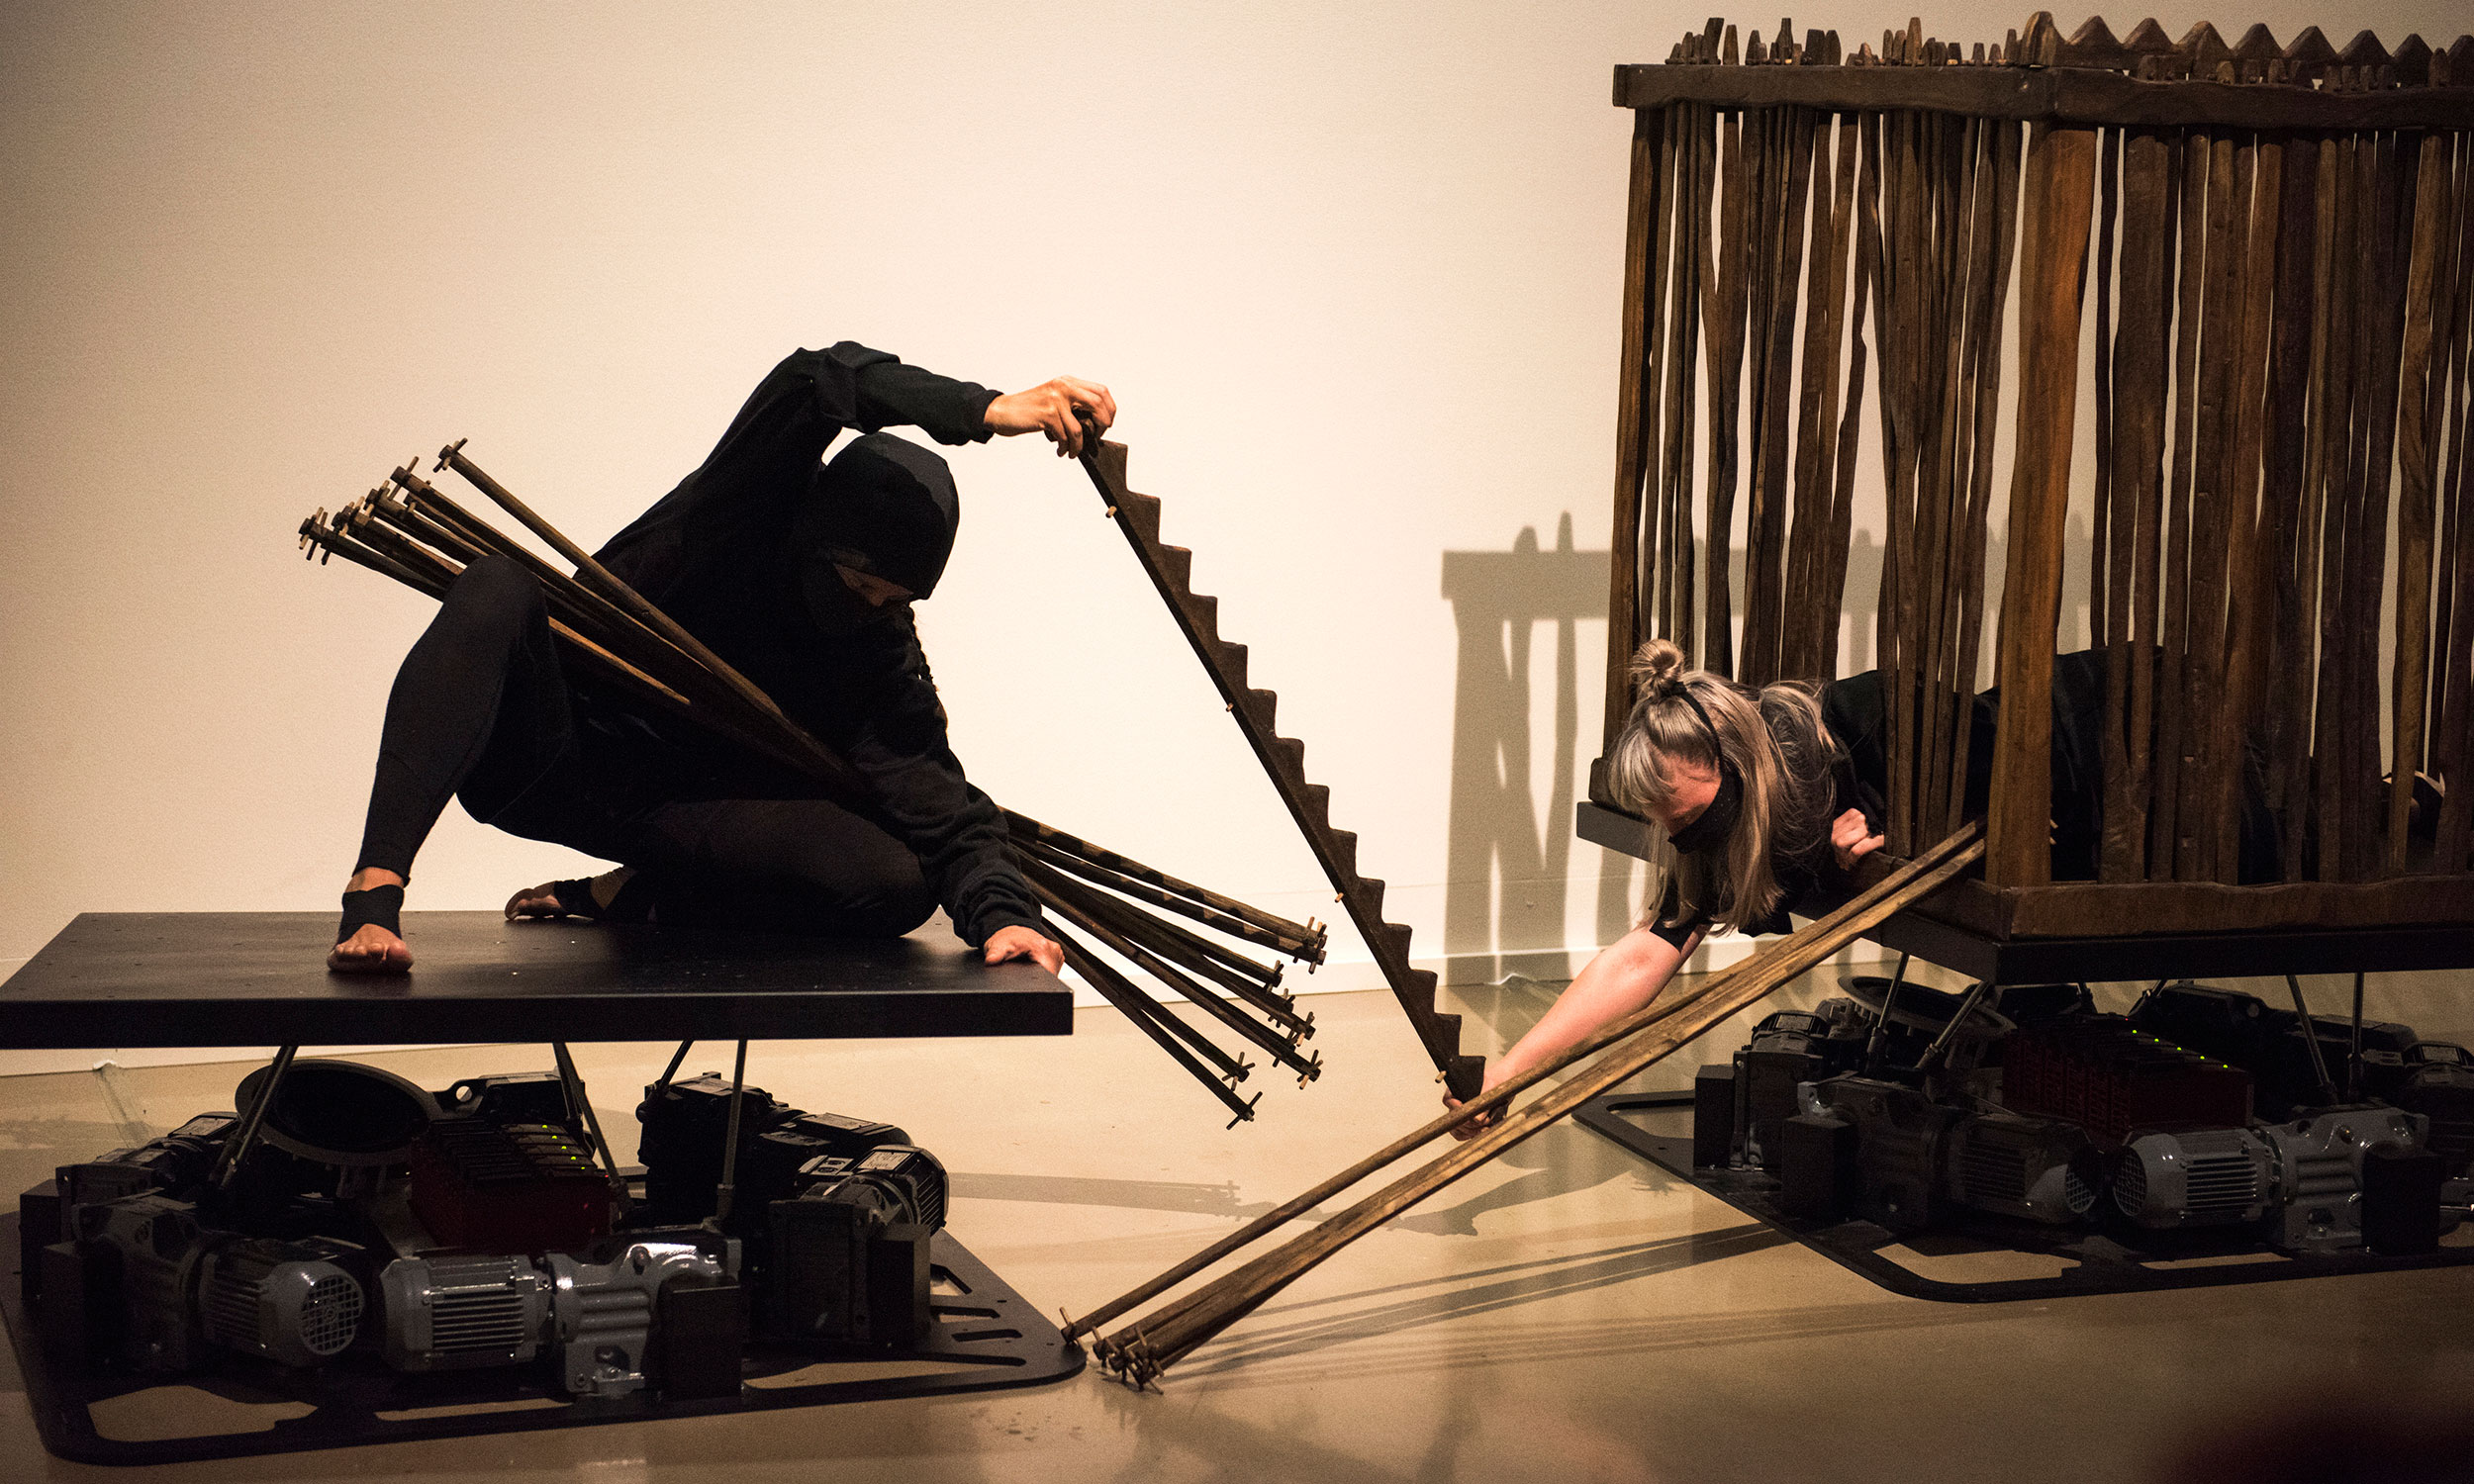 Melanie Lane and Amber McCartney perform 'Number of the Machine' with two  motion simulators. Photo: Vicki Jones.